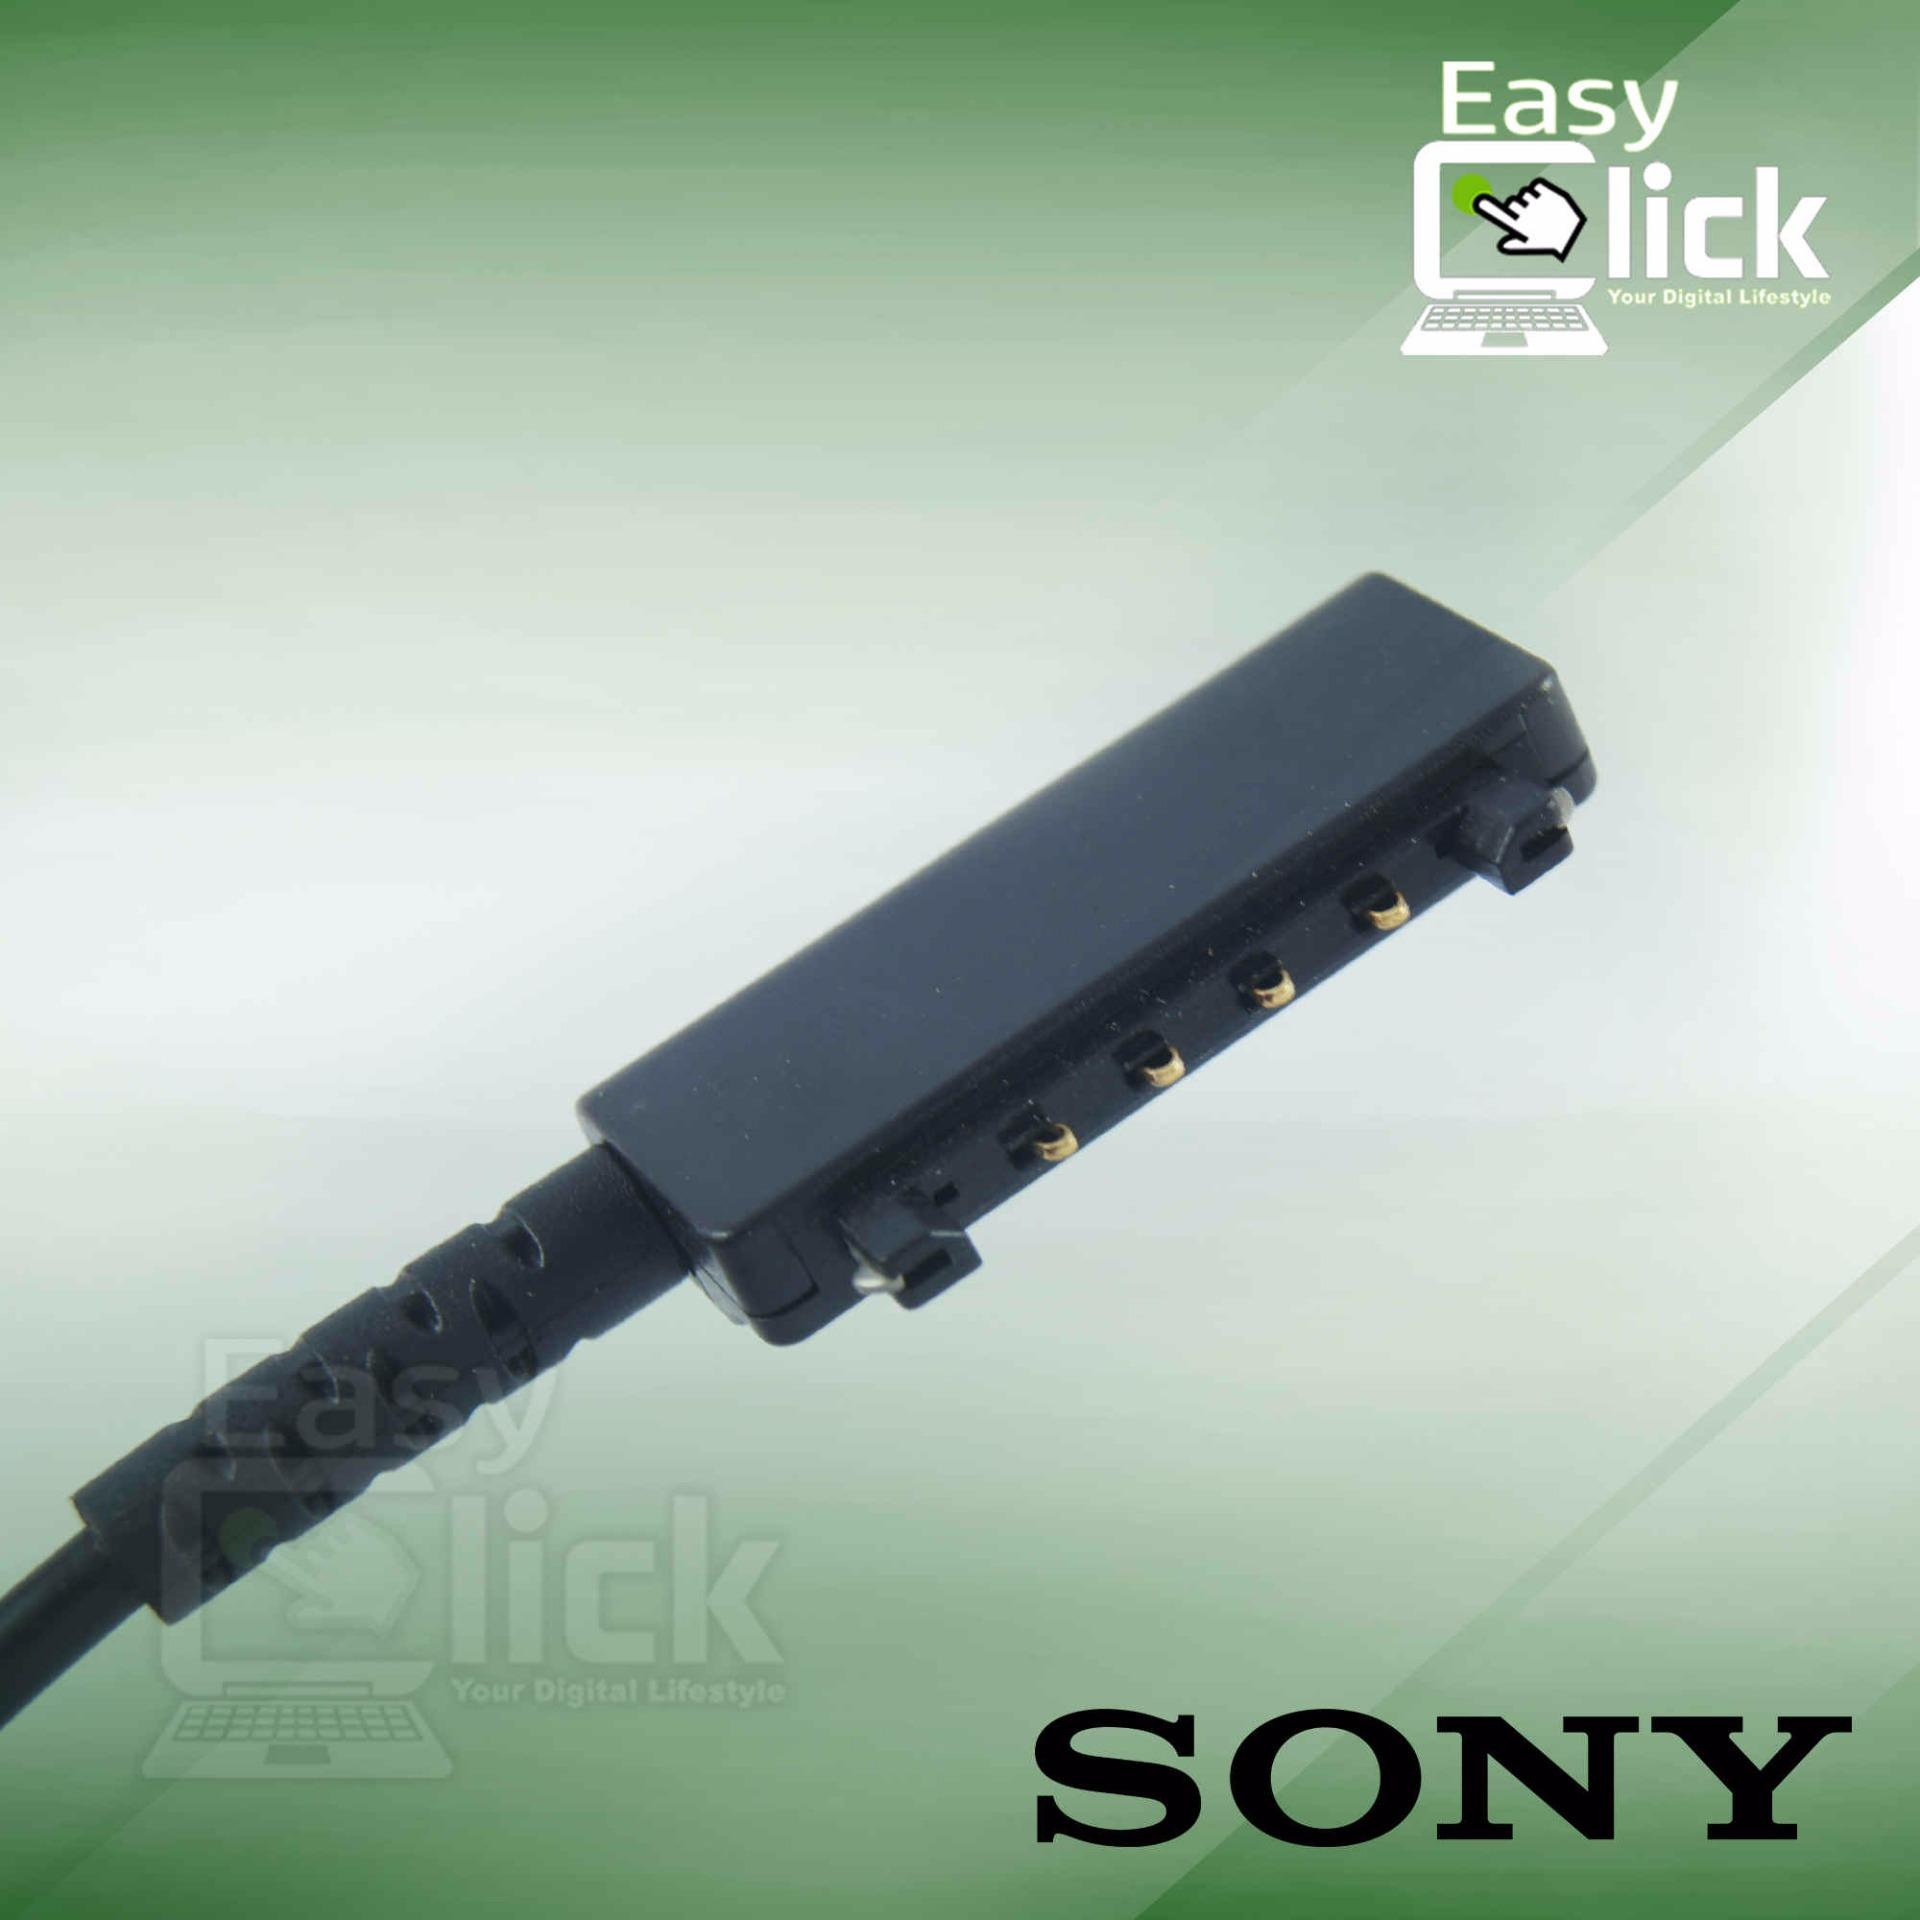 Sony Xperia ADP-30KH A Tablet AC Adapter Charger 10.5V 2.9A 30W .